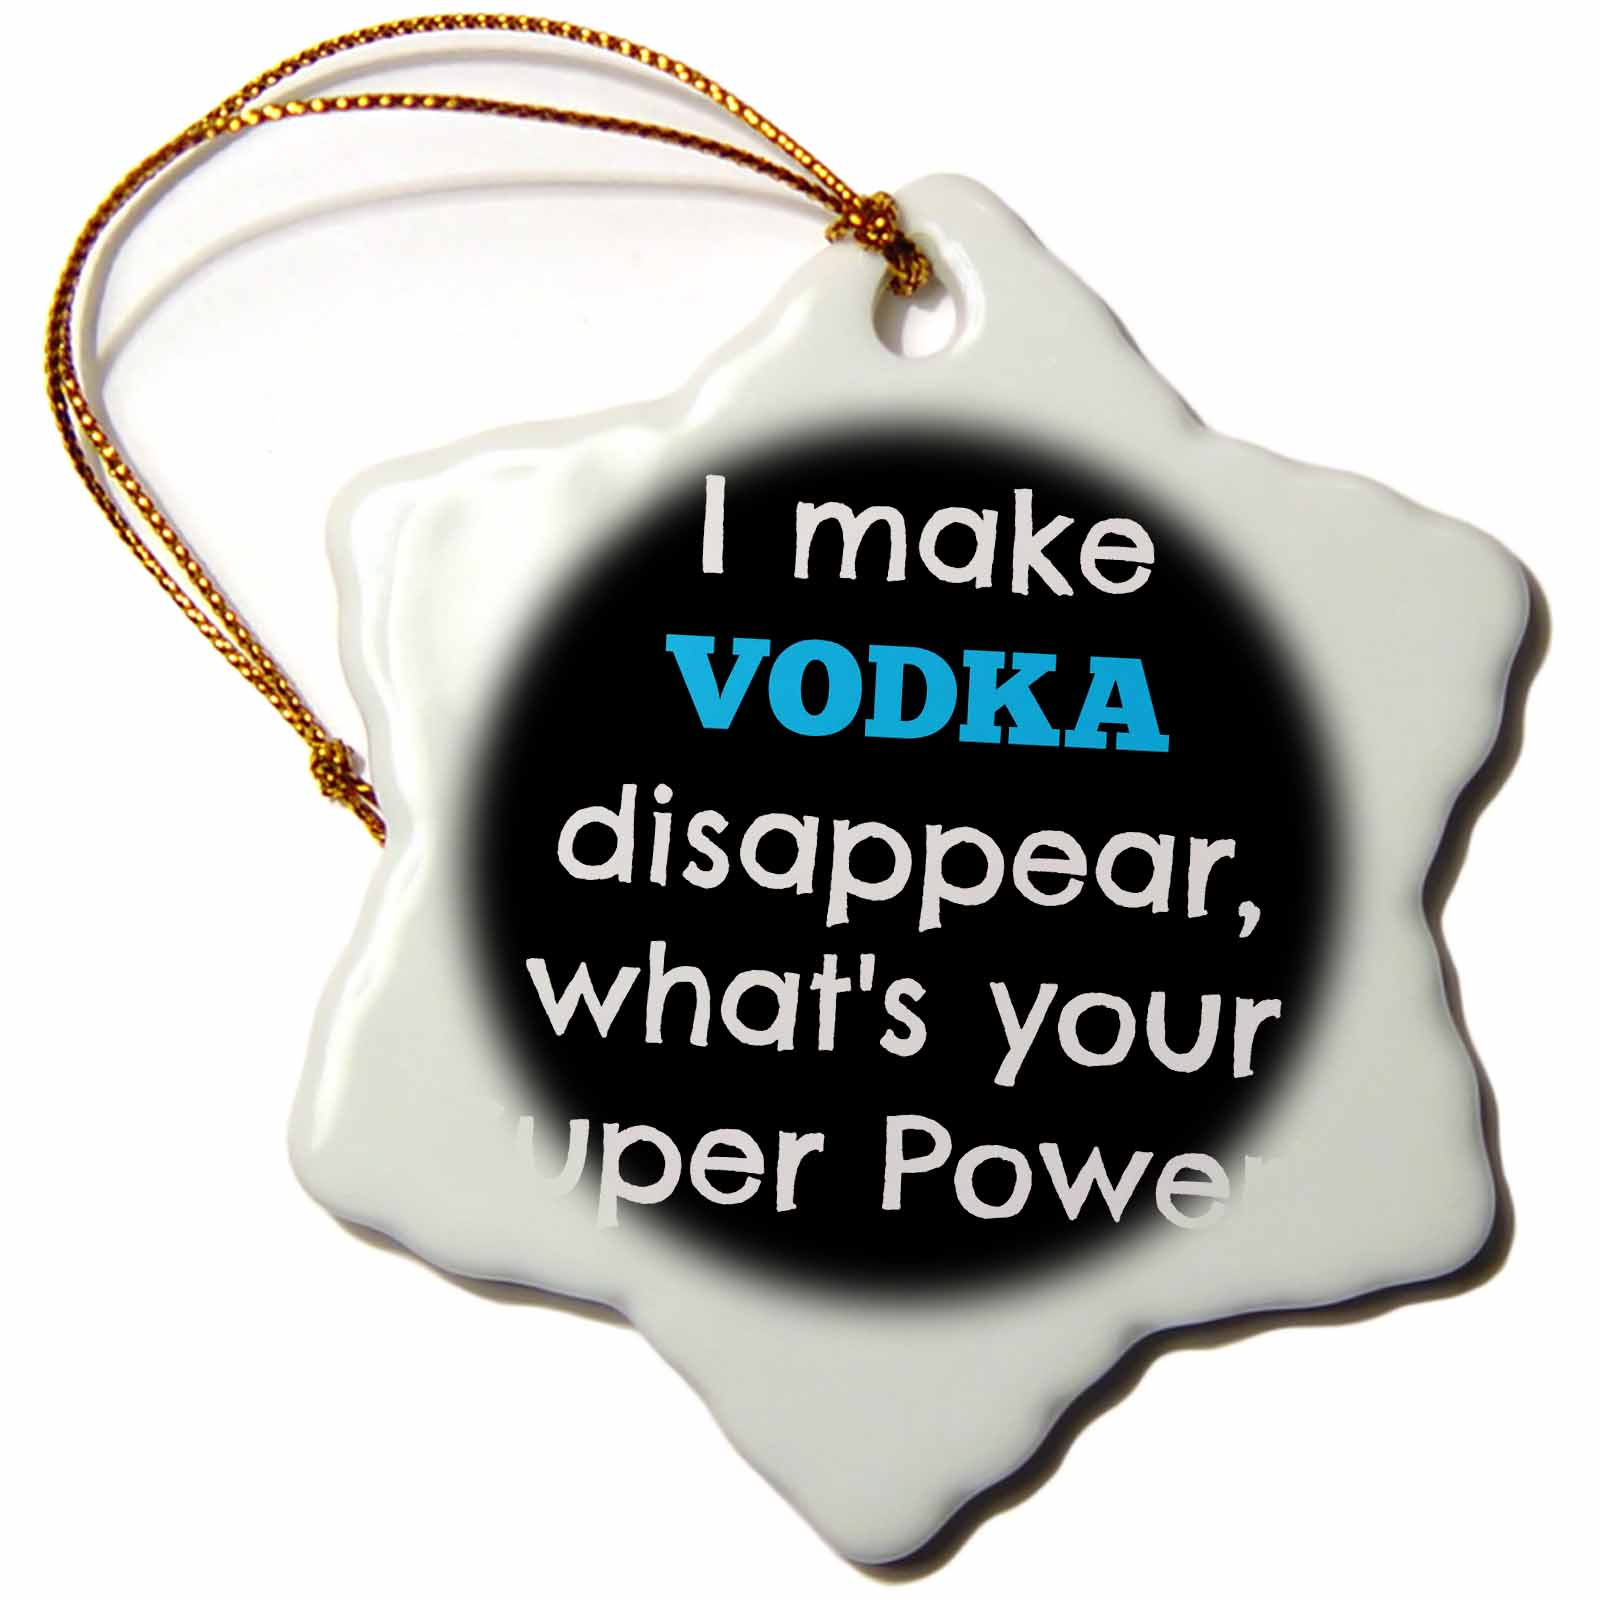 3dRose I make vodka disappear whats your super power, Snowflake Ornament, Porcelain, 3-inch